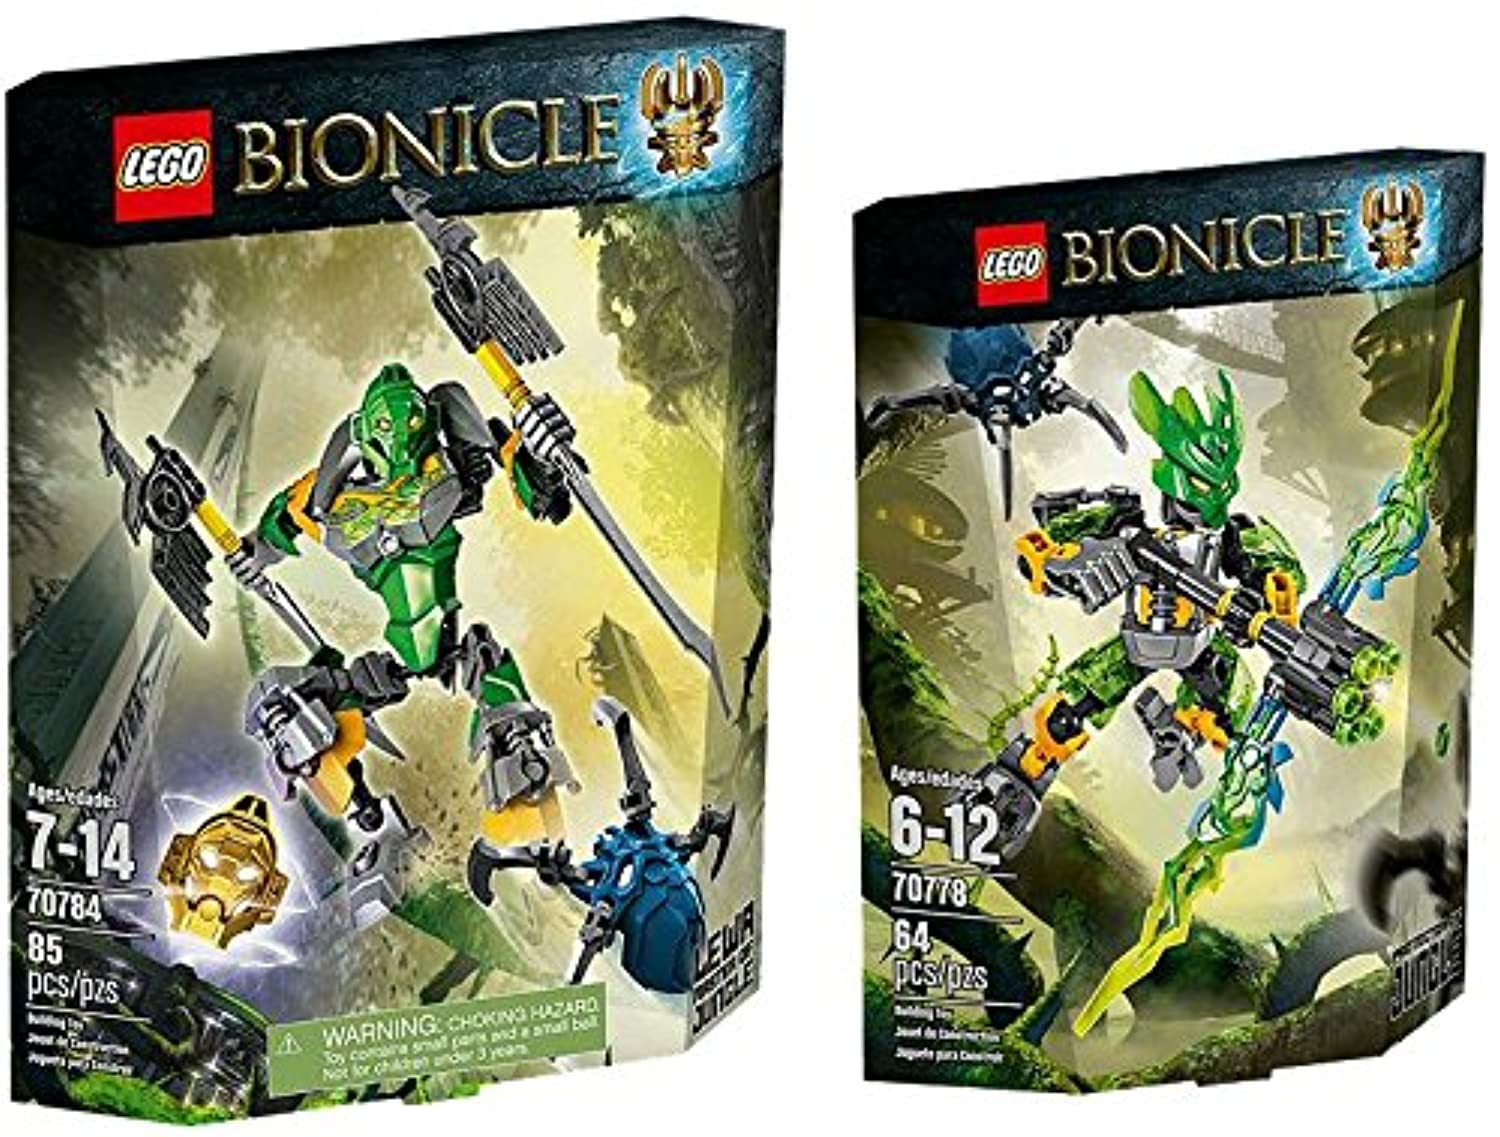 LEGO Bionicle Protector of Jungle Power Up Set [70784, 70778]